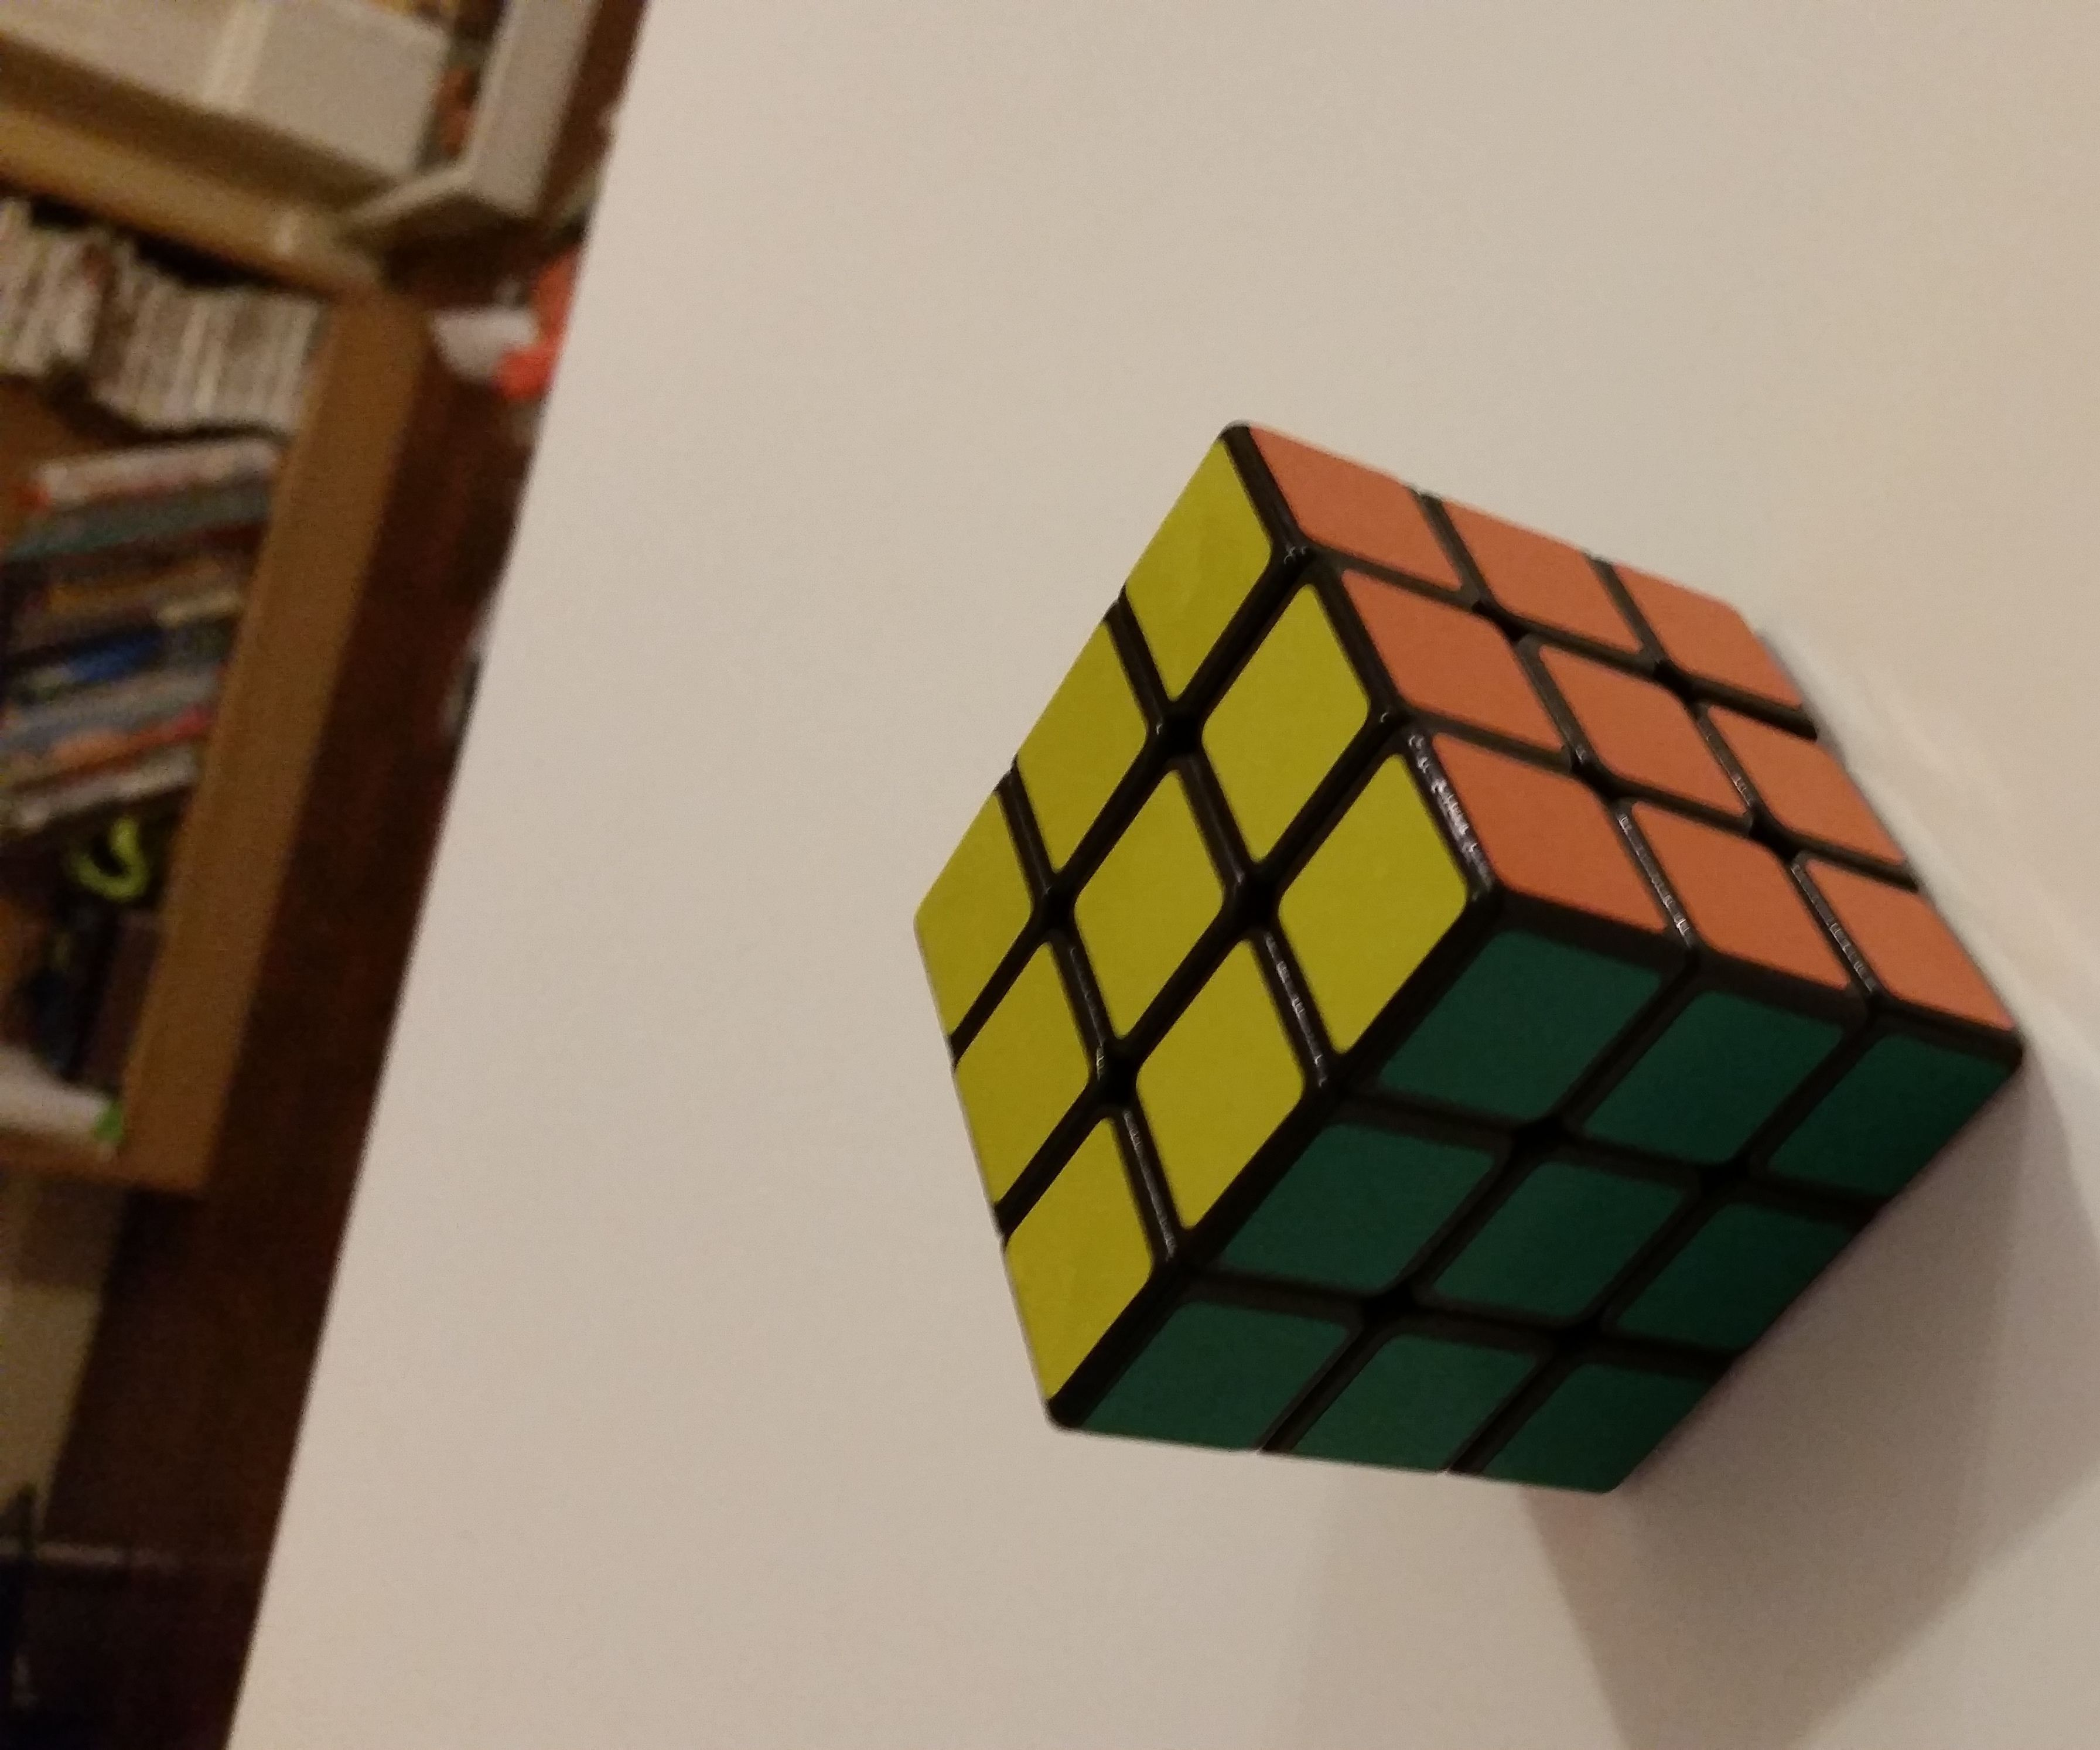 How to Solve the 3x3x3 Rubik's Cube